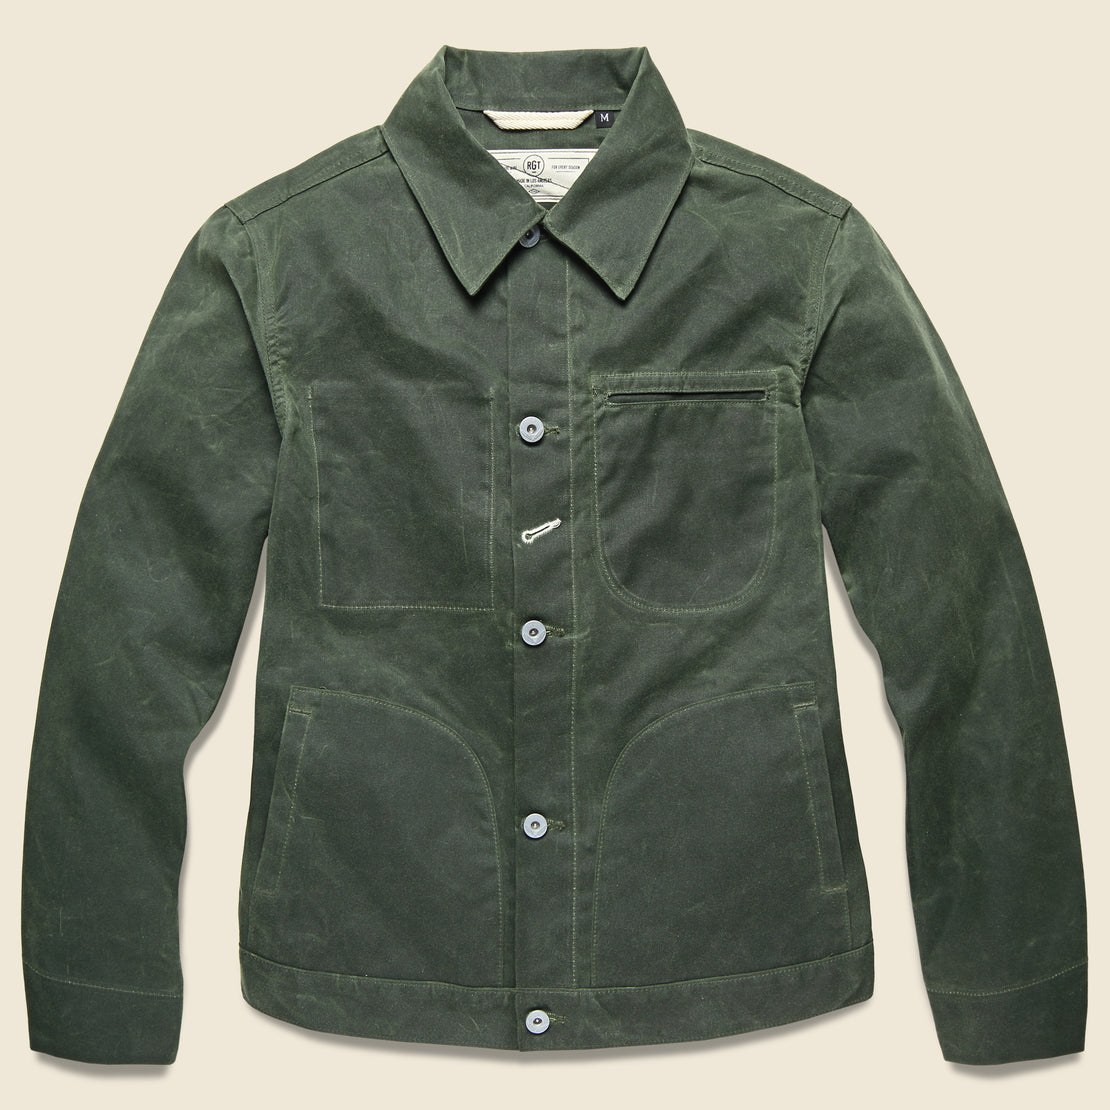 Rogue Territory Supply Jacket - Waxed Olive Ridgeline